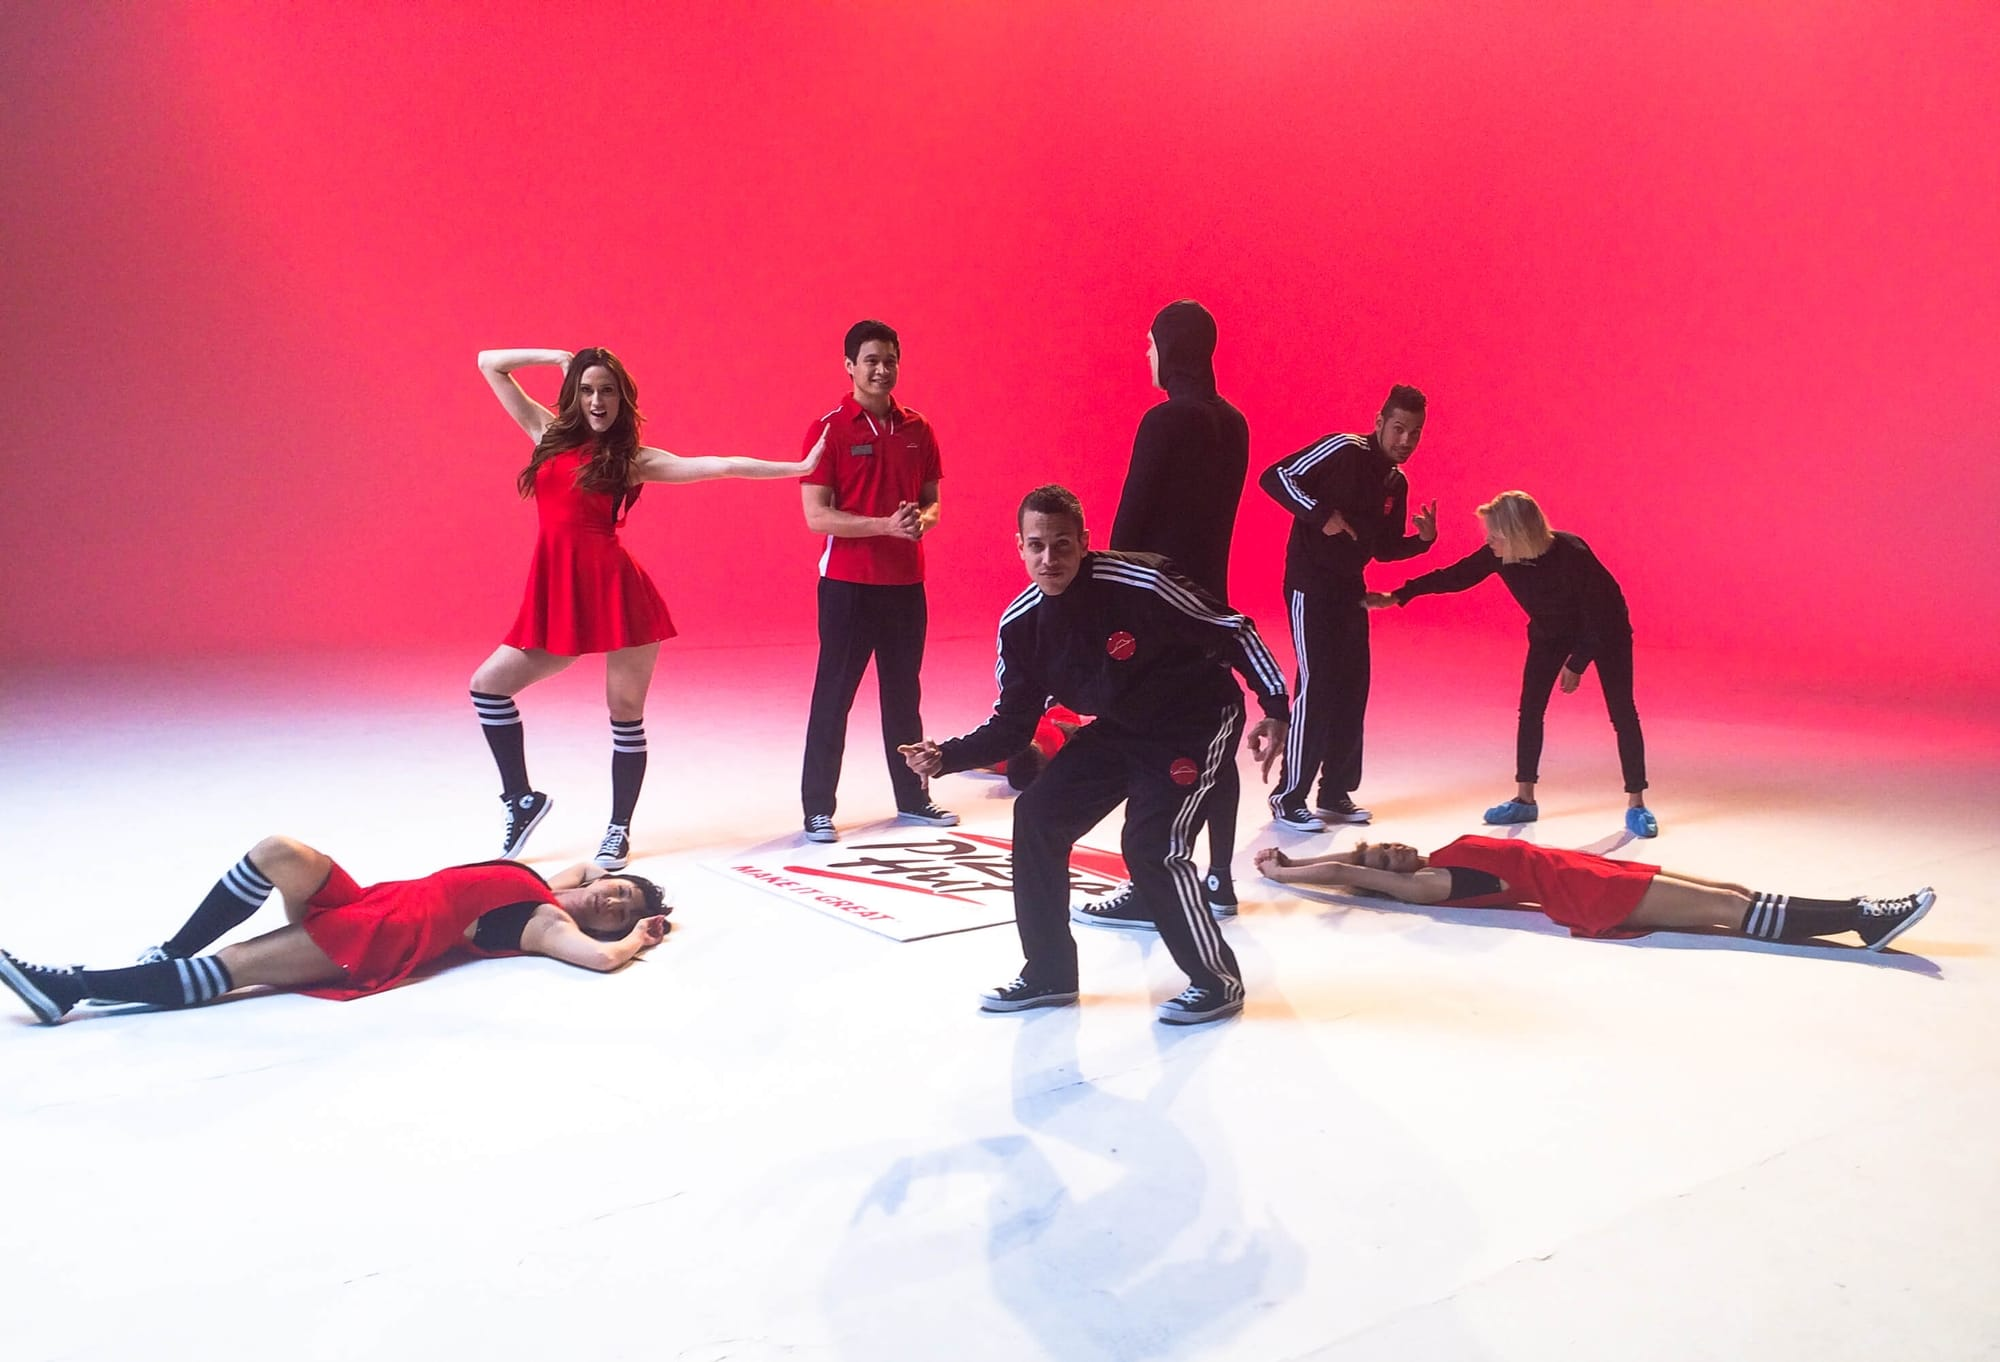 Tv-commercials-pizza-hut-asher entertainment-food-fun-set-filming-crew-cast-commercial-dancers-popping